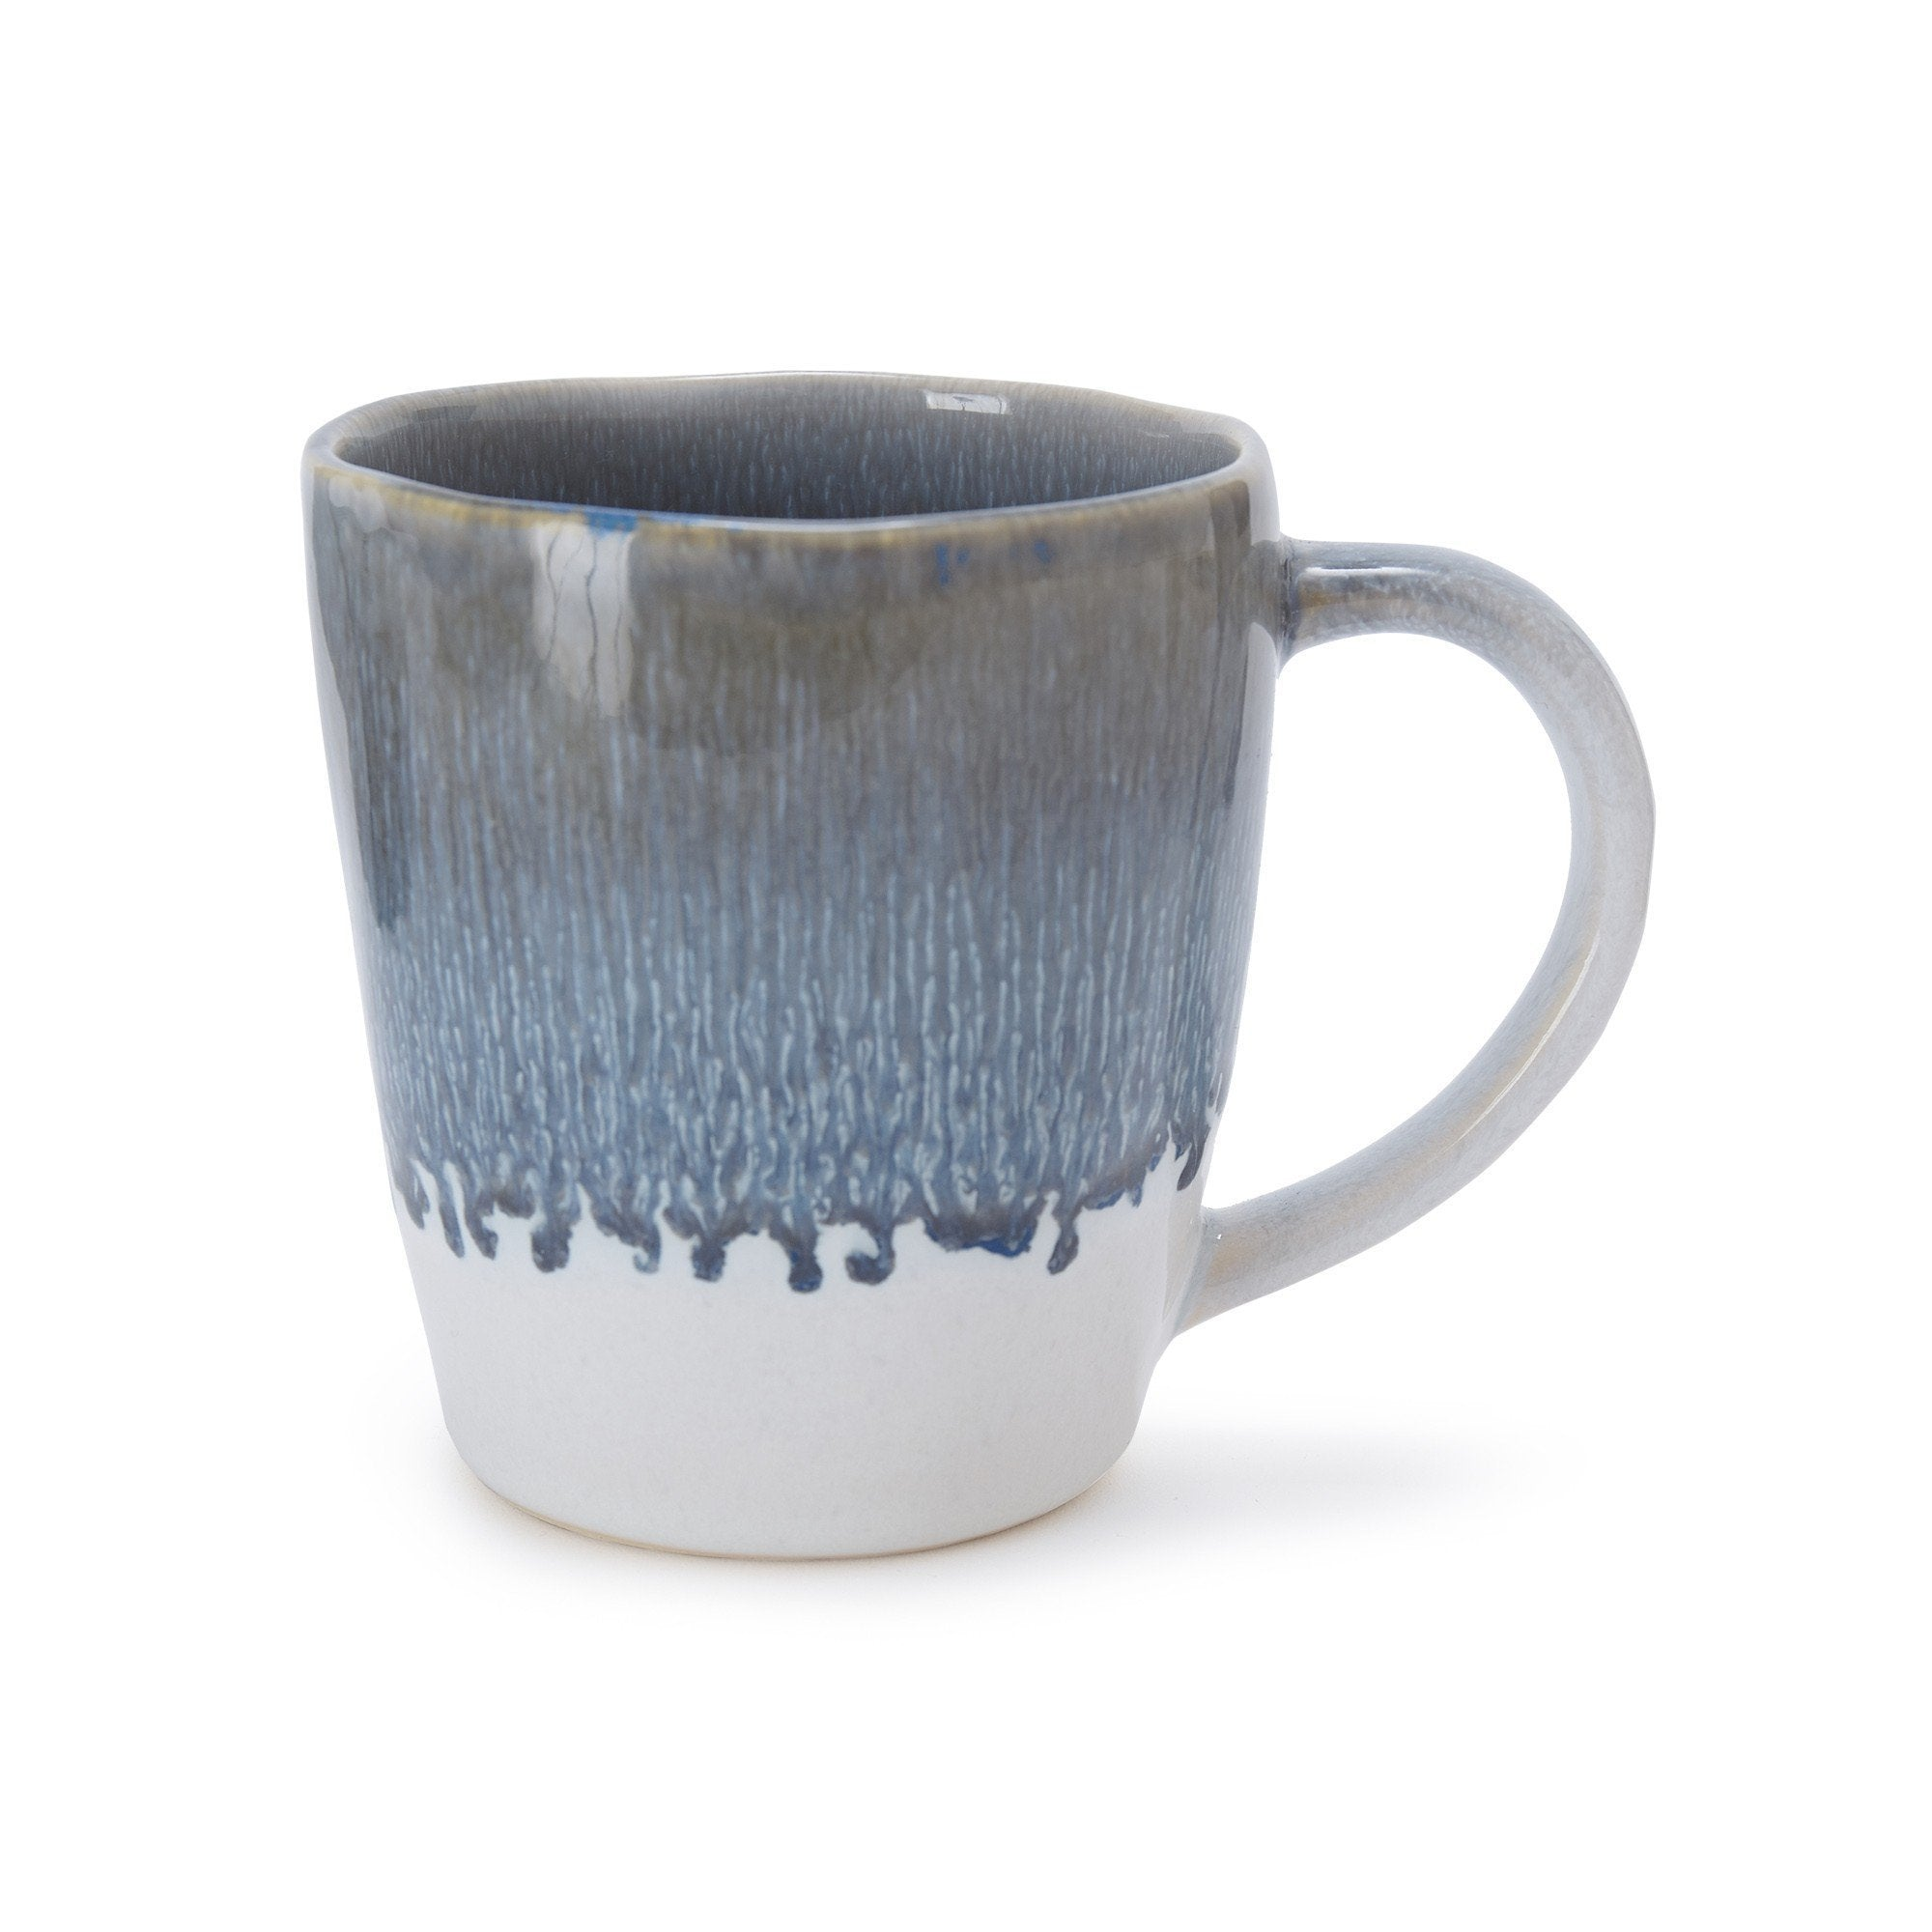 Caima Mug Set blue grey, 100% ceramic